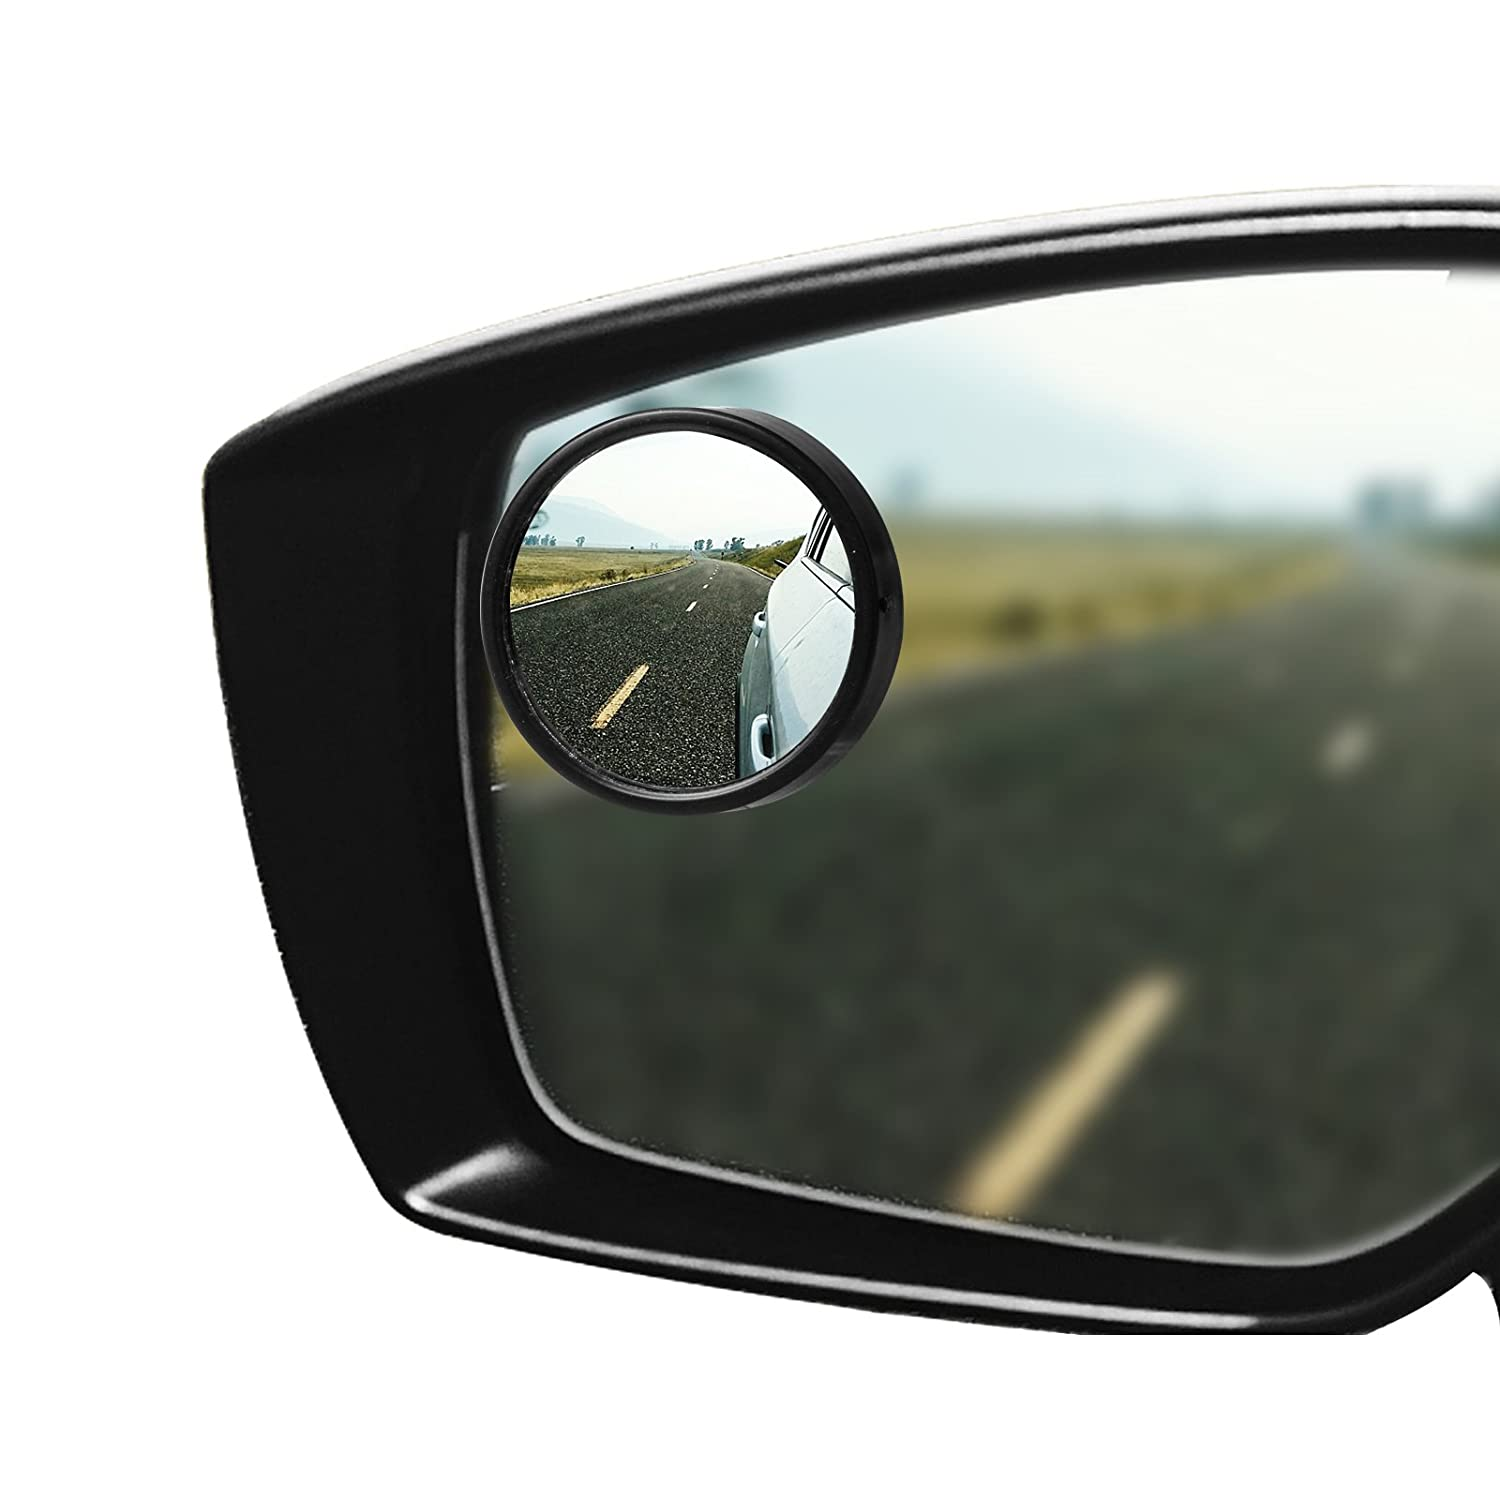 Blind Spot Mirror for Car, 2' Frameless Waterproof HD Glass Convex Rear View Mirror 360 Degree Rotate Self-adhesive Door Wing Mirror for Car SUV Trucks and More Pack 2 (Frameless) MRCARTOOL